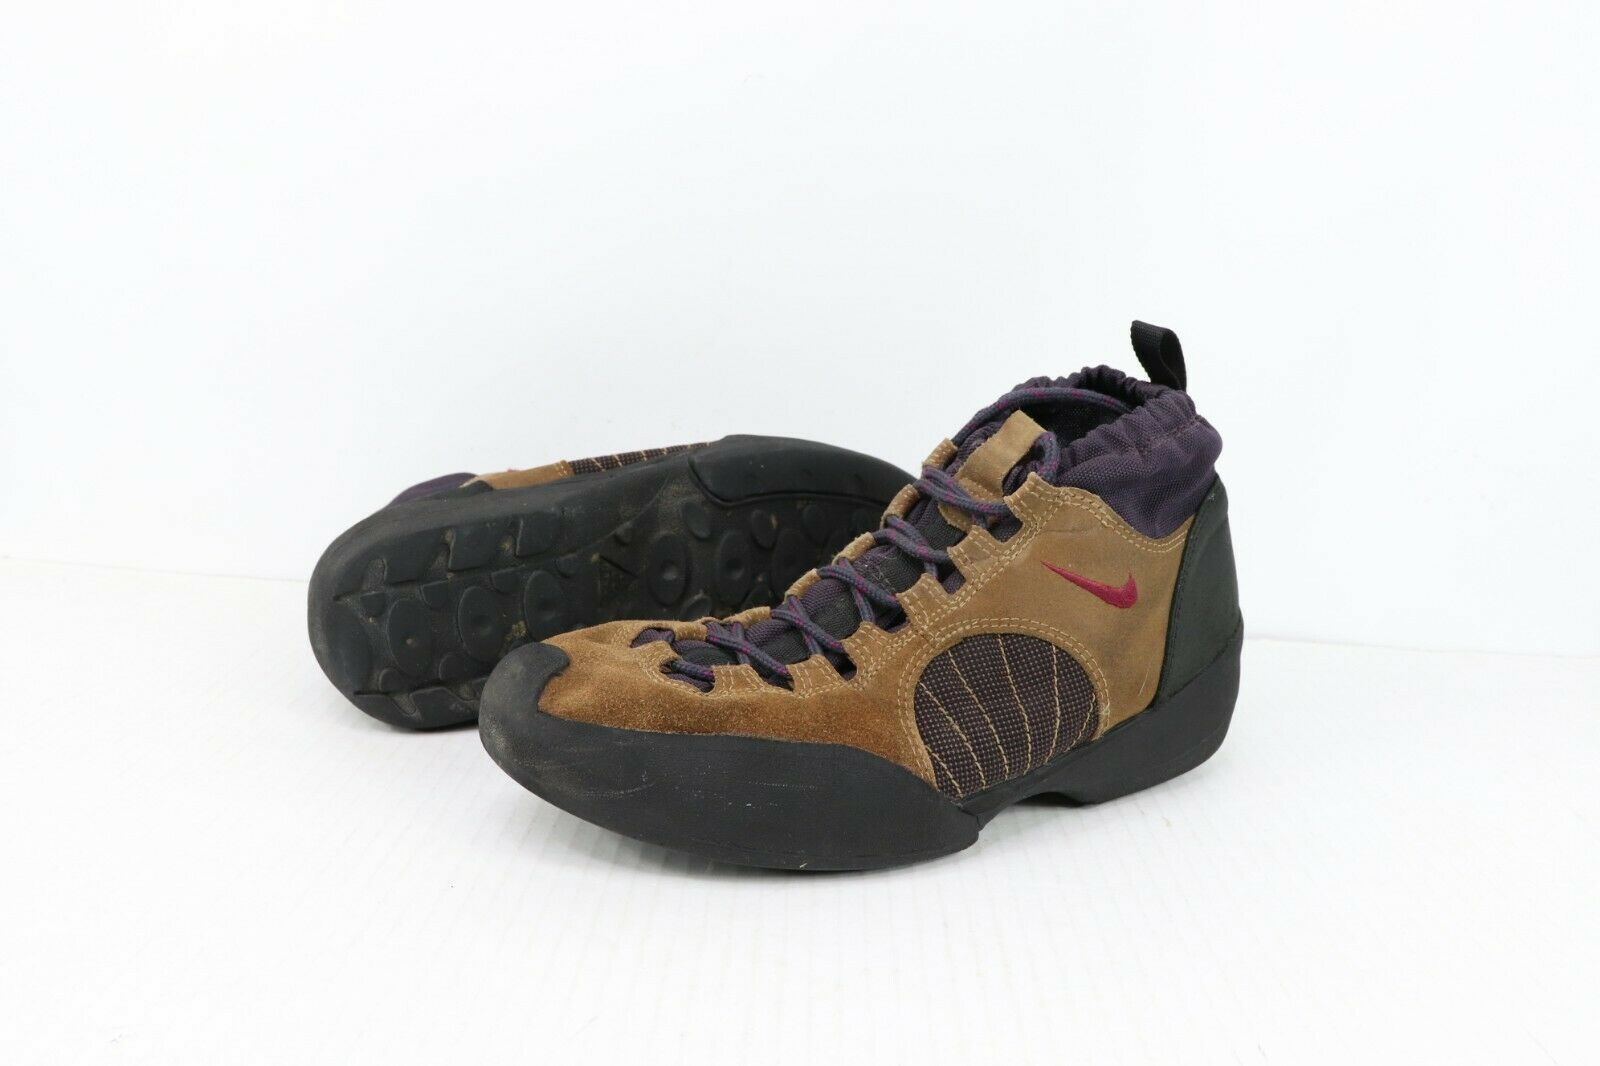 Vintage 90s Nike ACG Mens Size 12 Air Half Dome Leather Hiking Trail Boots Brown